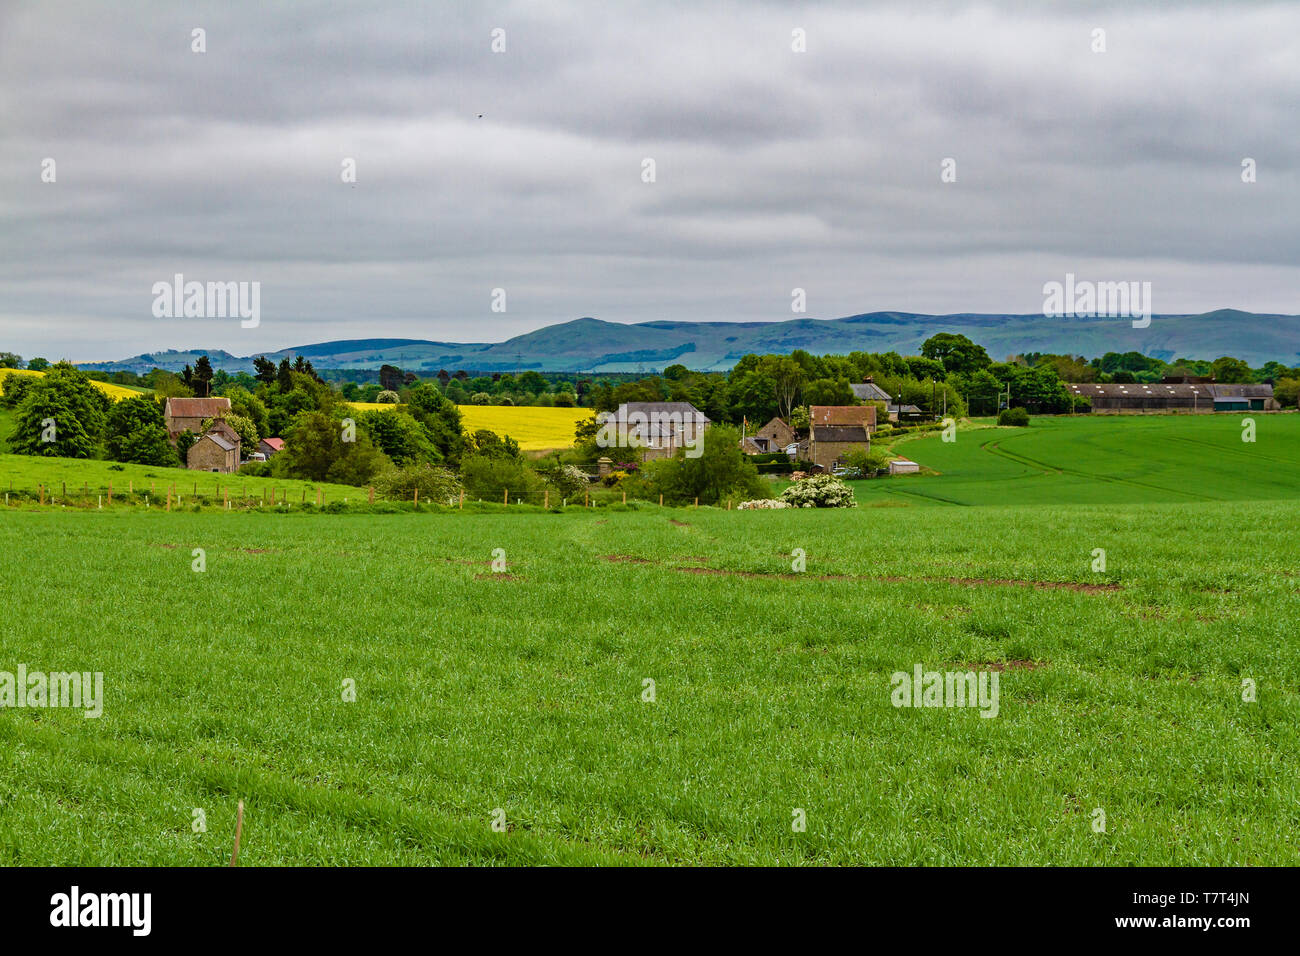 Arable farmland and buildings near Heatherslaw on the Ford and Etal Estates, Northumberland, UK. May 2018. Stock Photo